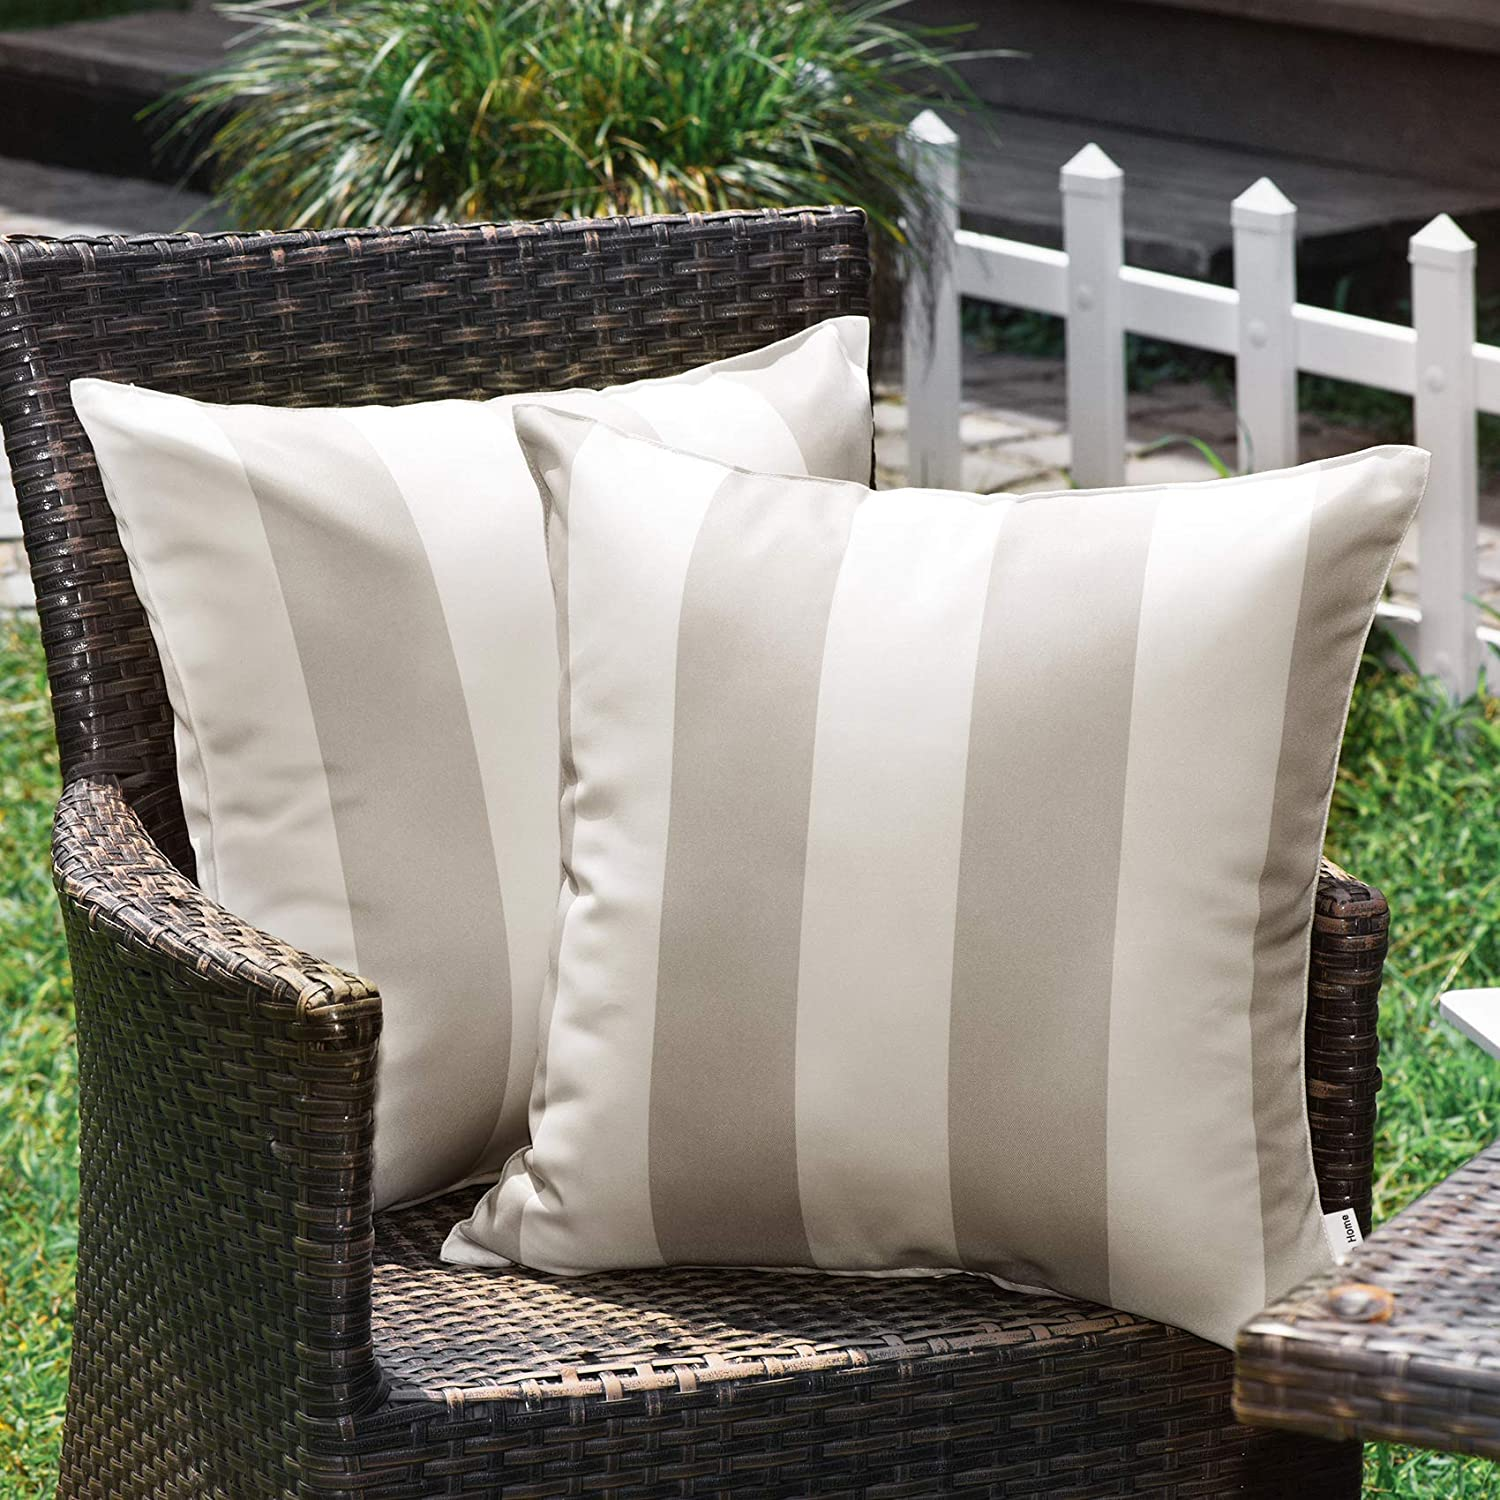 WESTERN HOME WH Outdoor Pillow Covers 20x20 Waterproof, Stripe Square Pillowcases Patio Throw Pillow Covers Cushions for Couch Bench Tent Garden - Pack of 2 Pillow Covers Sand